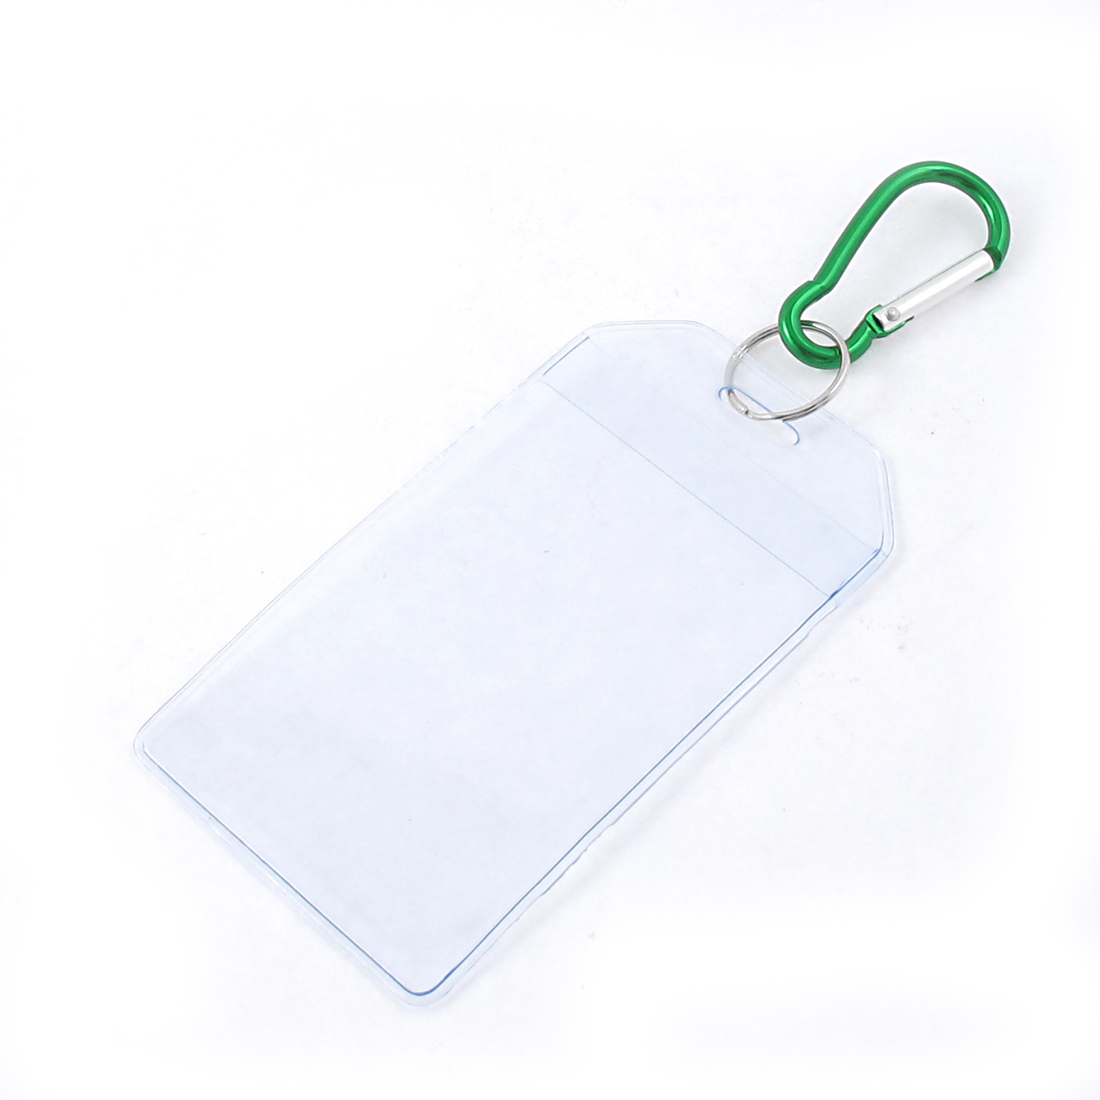 Office School Plastic Vertical Name ID Card Badge Holder Container Green Clear